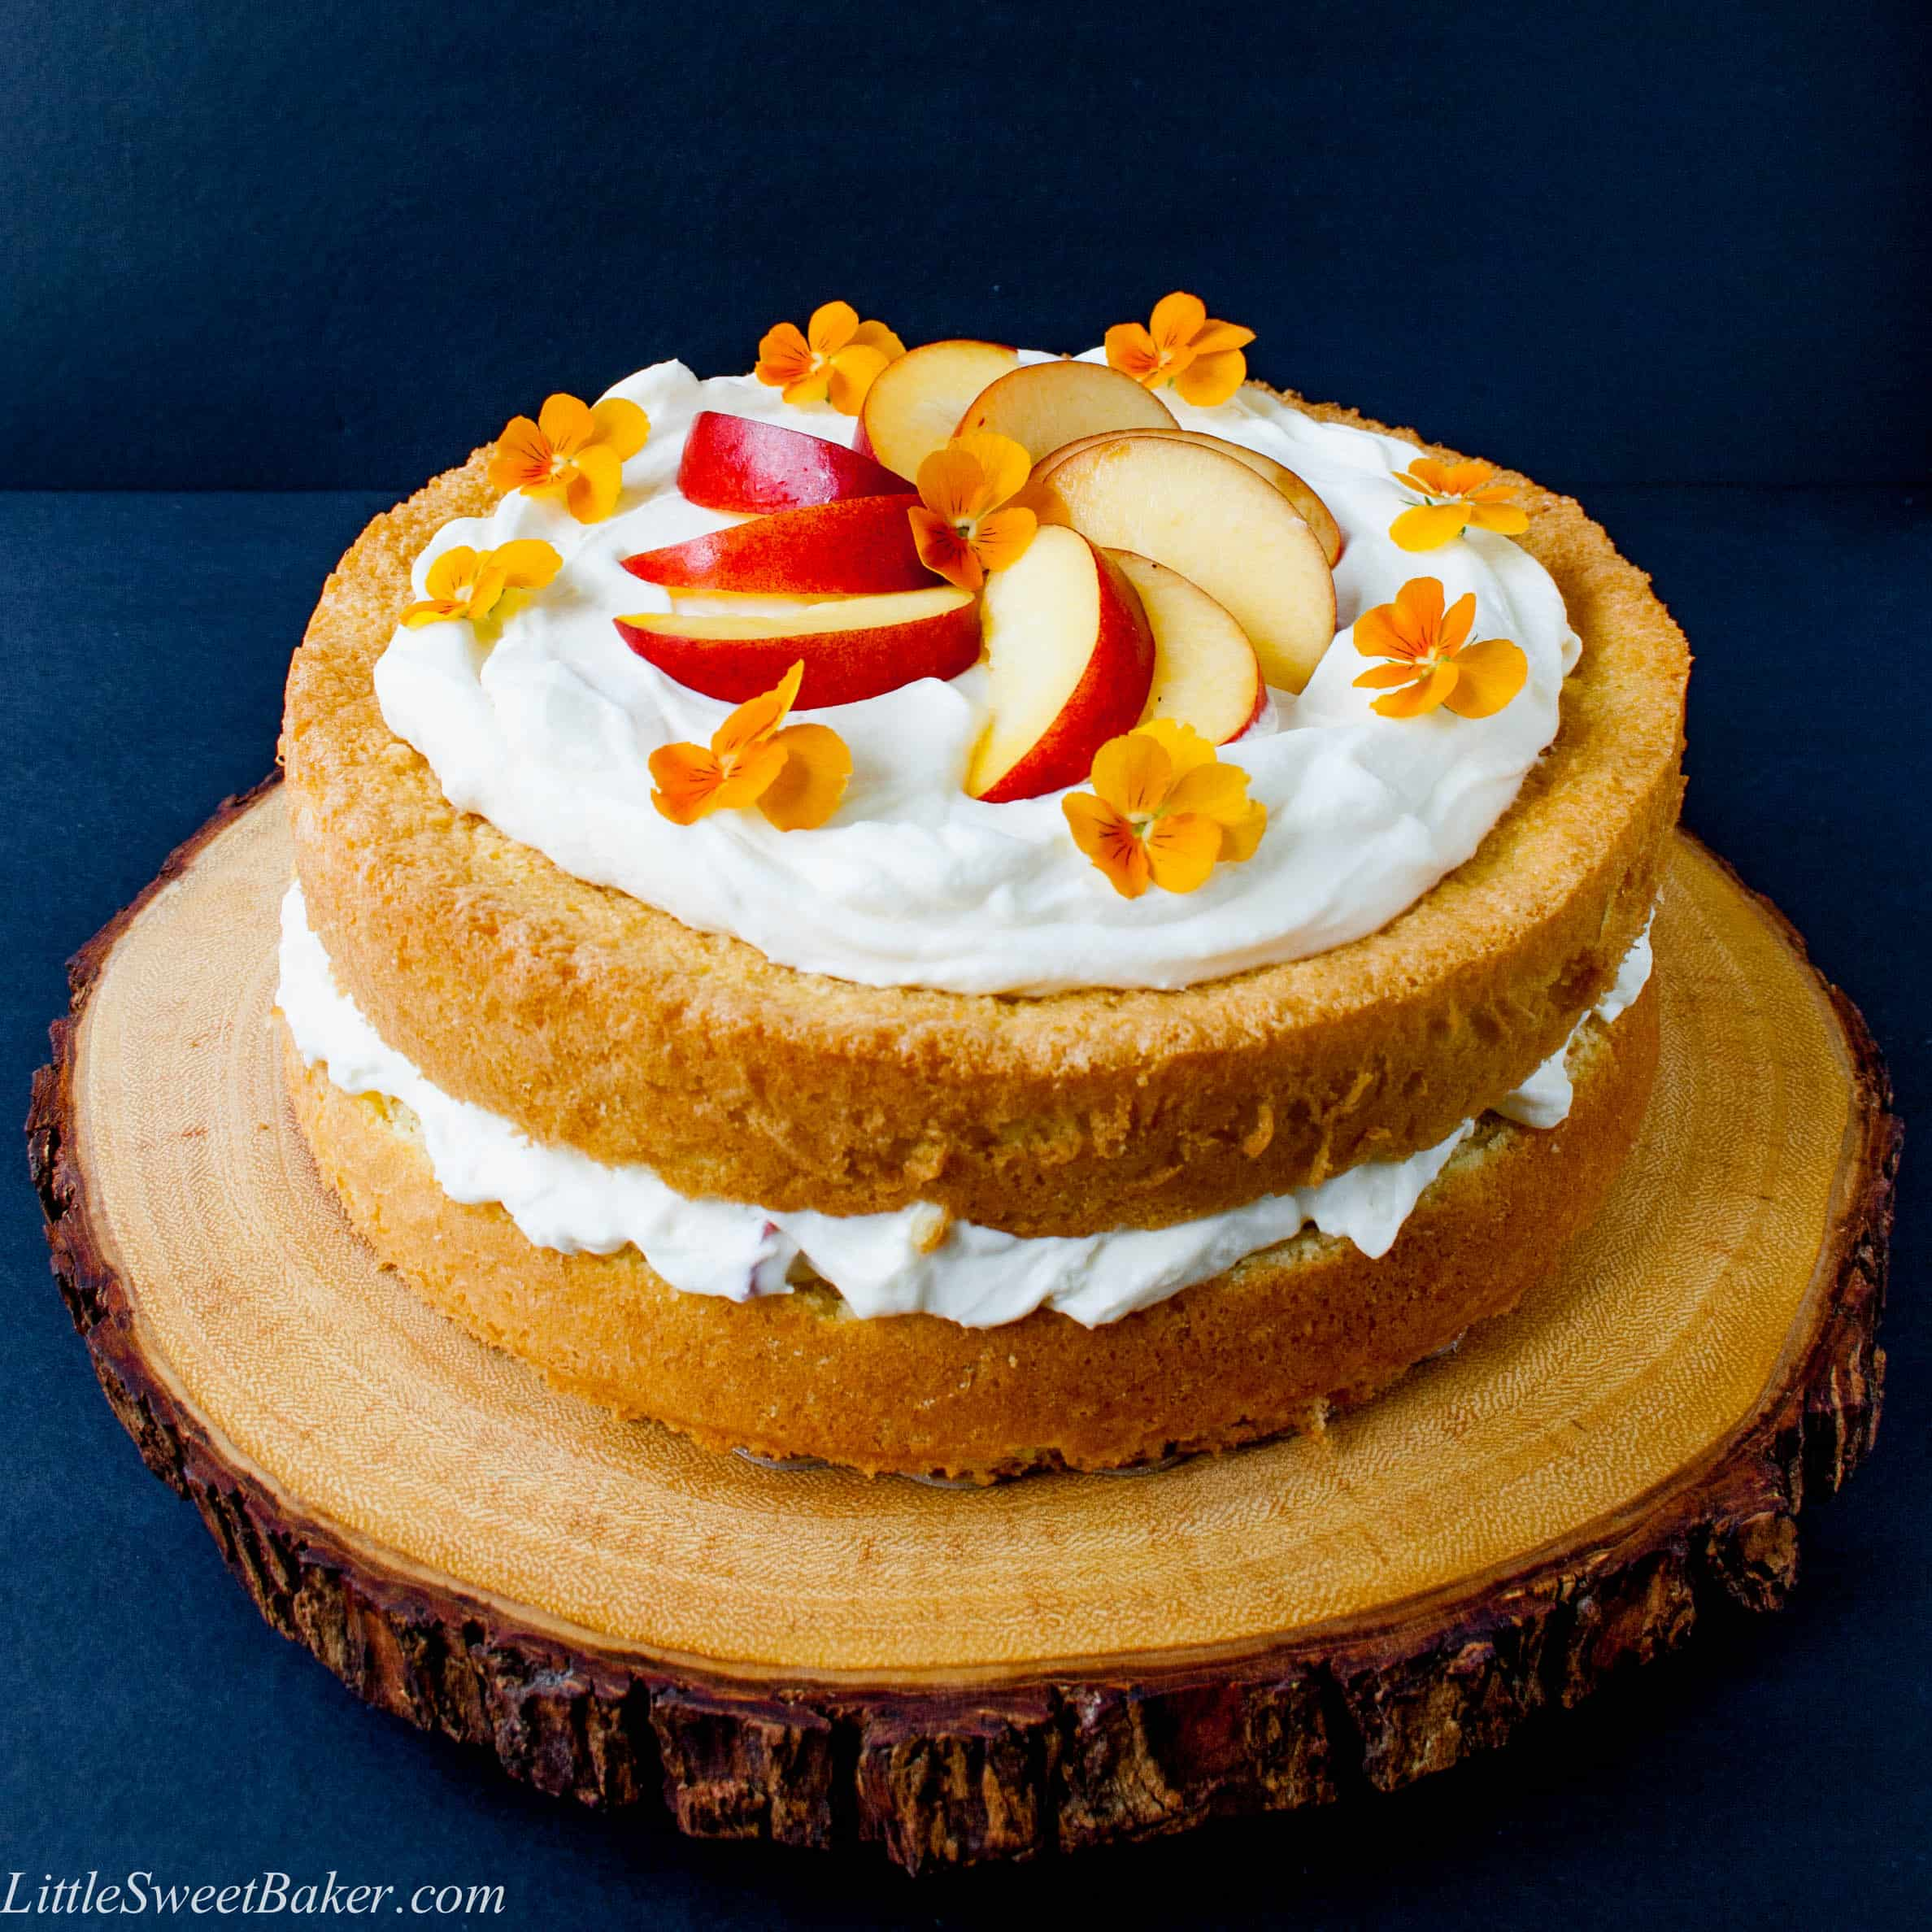 PEACHES AND CREAM CAKE. A simple 3-ingredient sponge cake with a fresh peaches and cream filling and finished with a cloud of whipped topping.